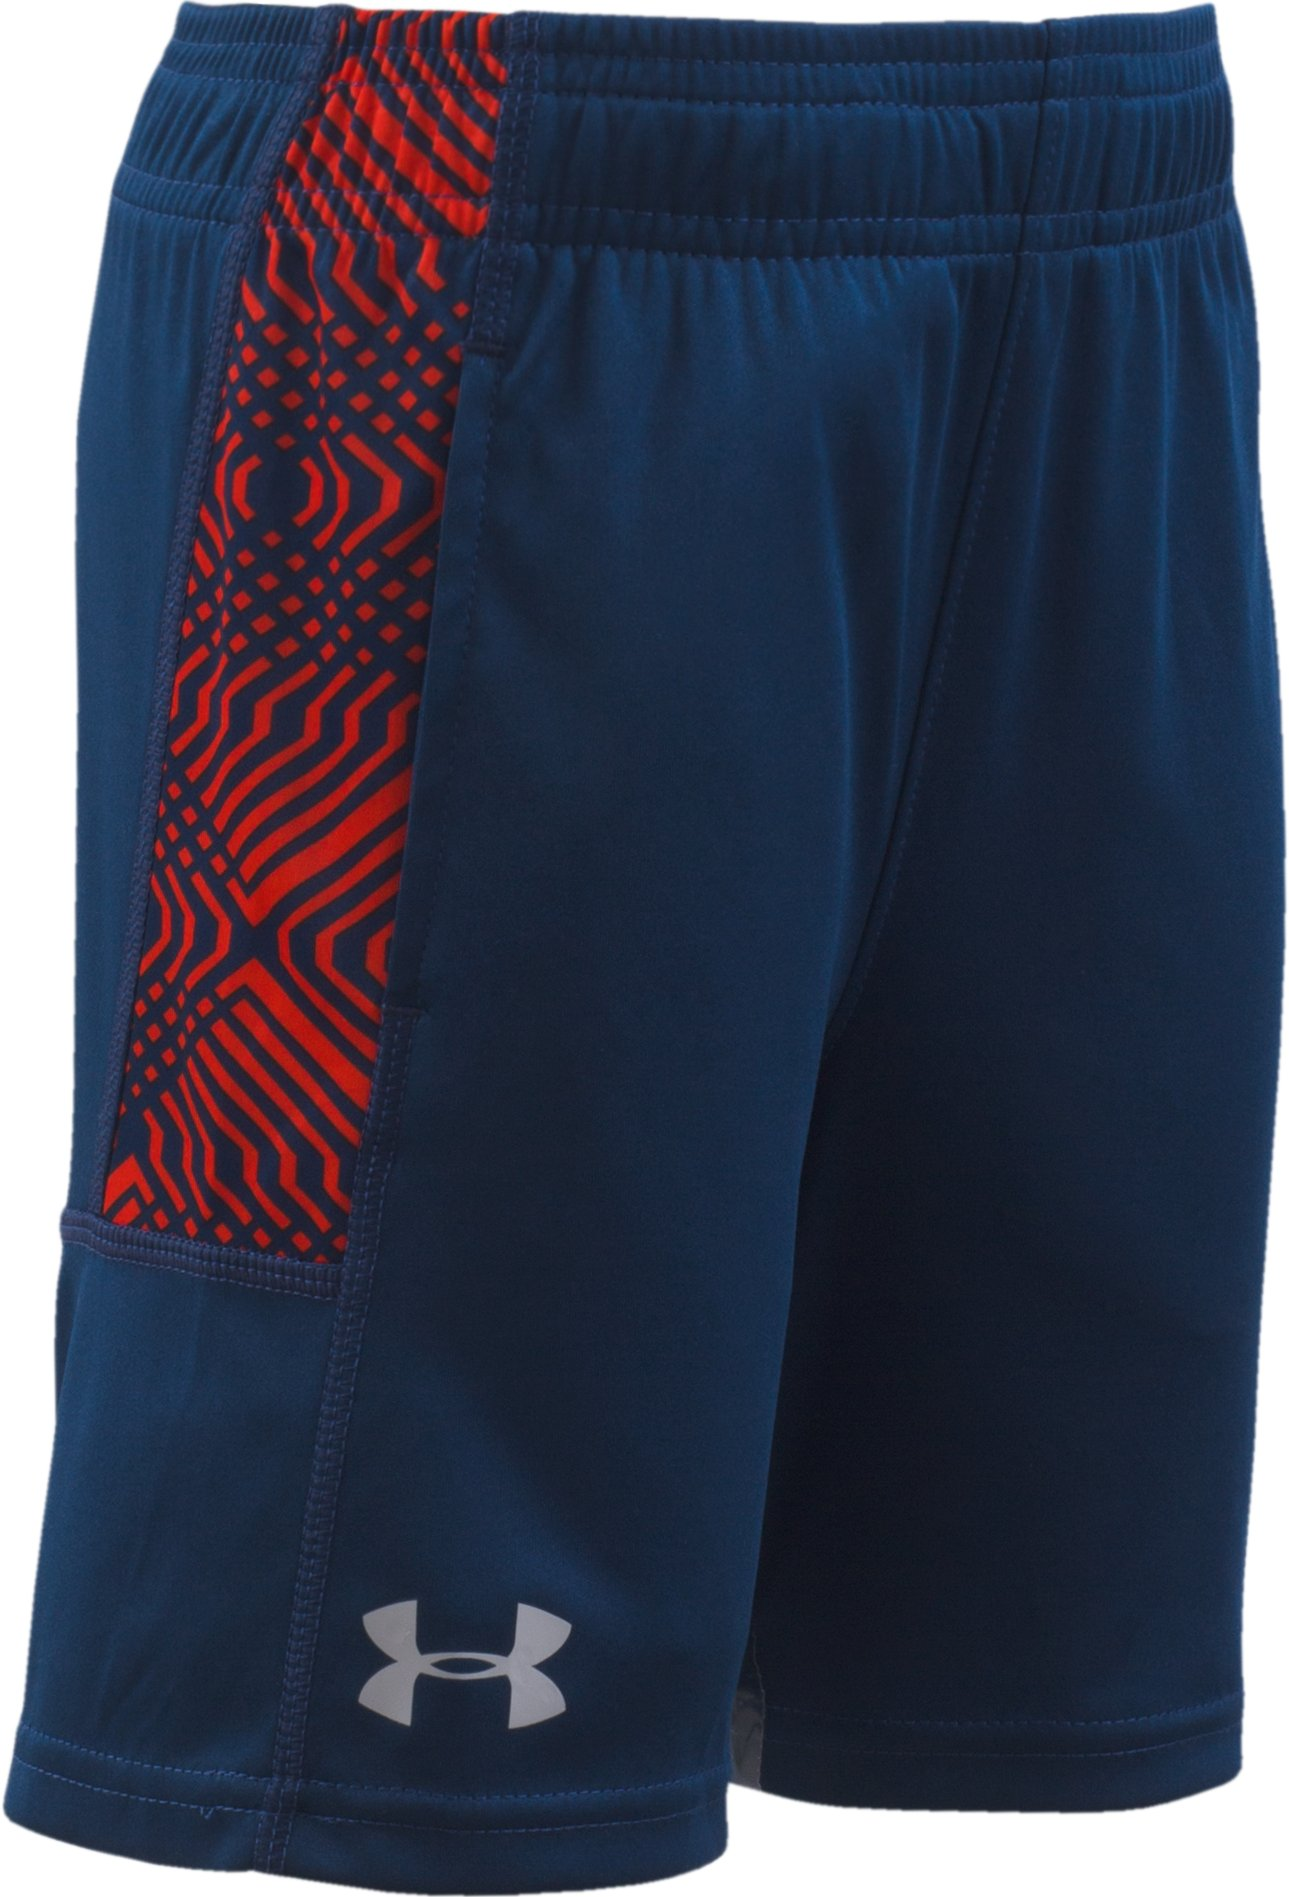 Boys' Toddler UA Midtown Grid Eliminator Shorts, BLACKOUT NAVY, Laydown